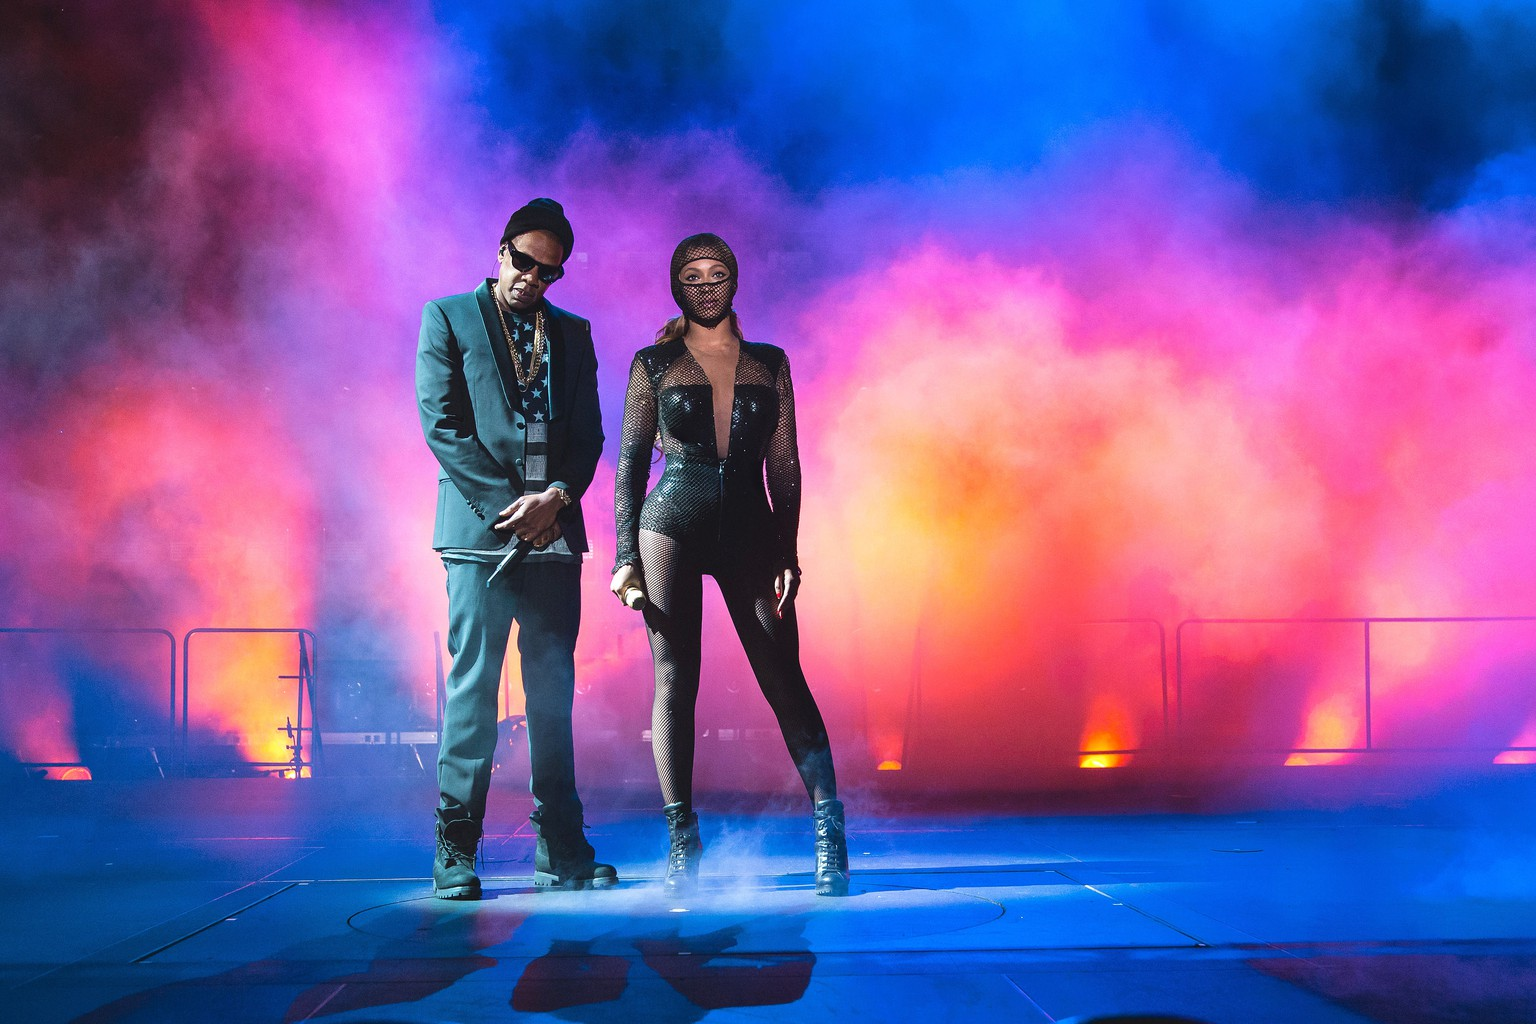 IMAGE DISTRIBUTED FOR PARKWOOD ENTERTAINMENT - JAY Z and Beyonce perform during the On The Run tour at Citizens Bank Park on Saturday, July 5, 2014, in Philadelphia. (Photo by Robin Harper/Invision for Parkwood Entertainment/AP Images)